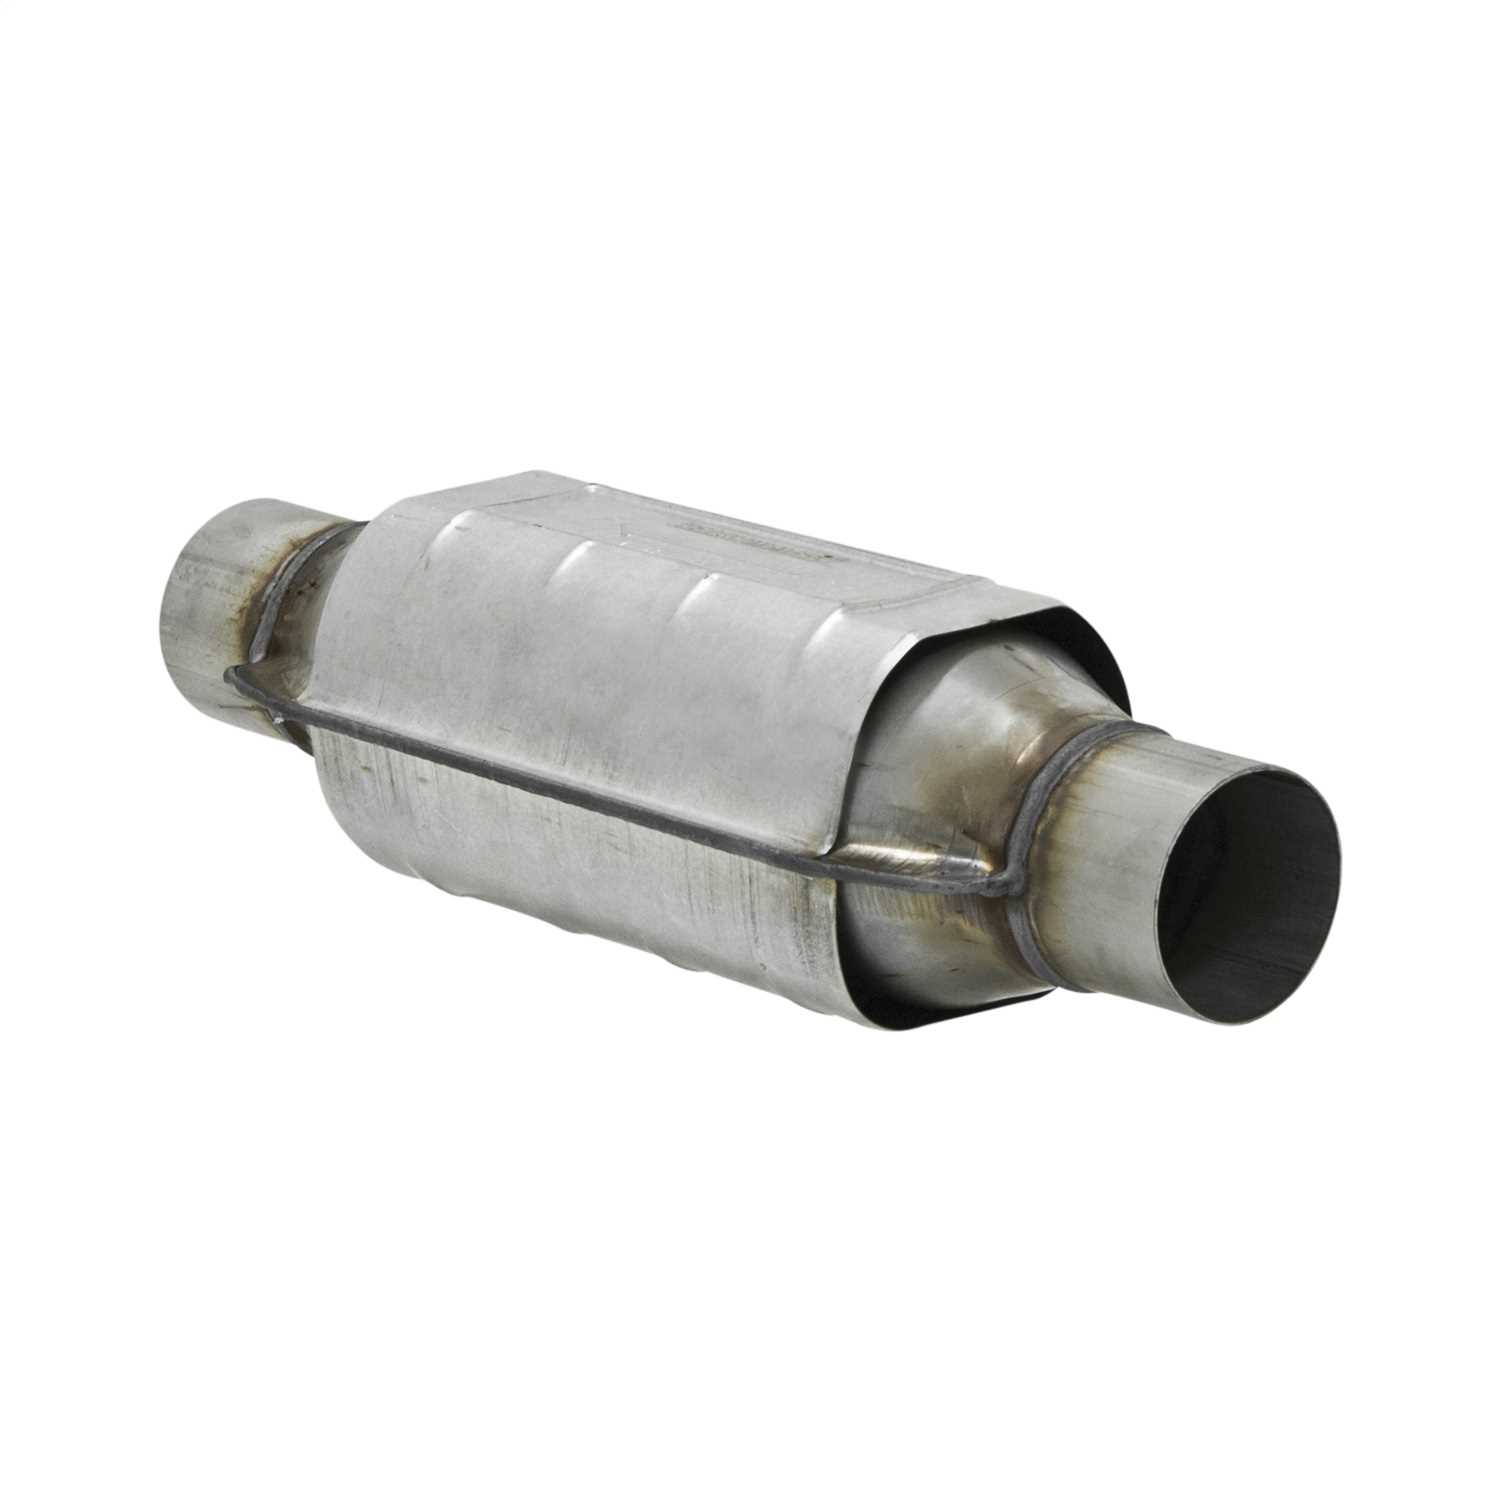 2820124 Flowmaster 49 State Catalytic Converters Universal Catalytic Converter